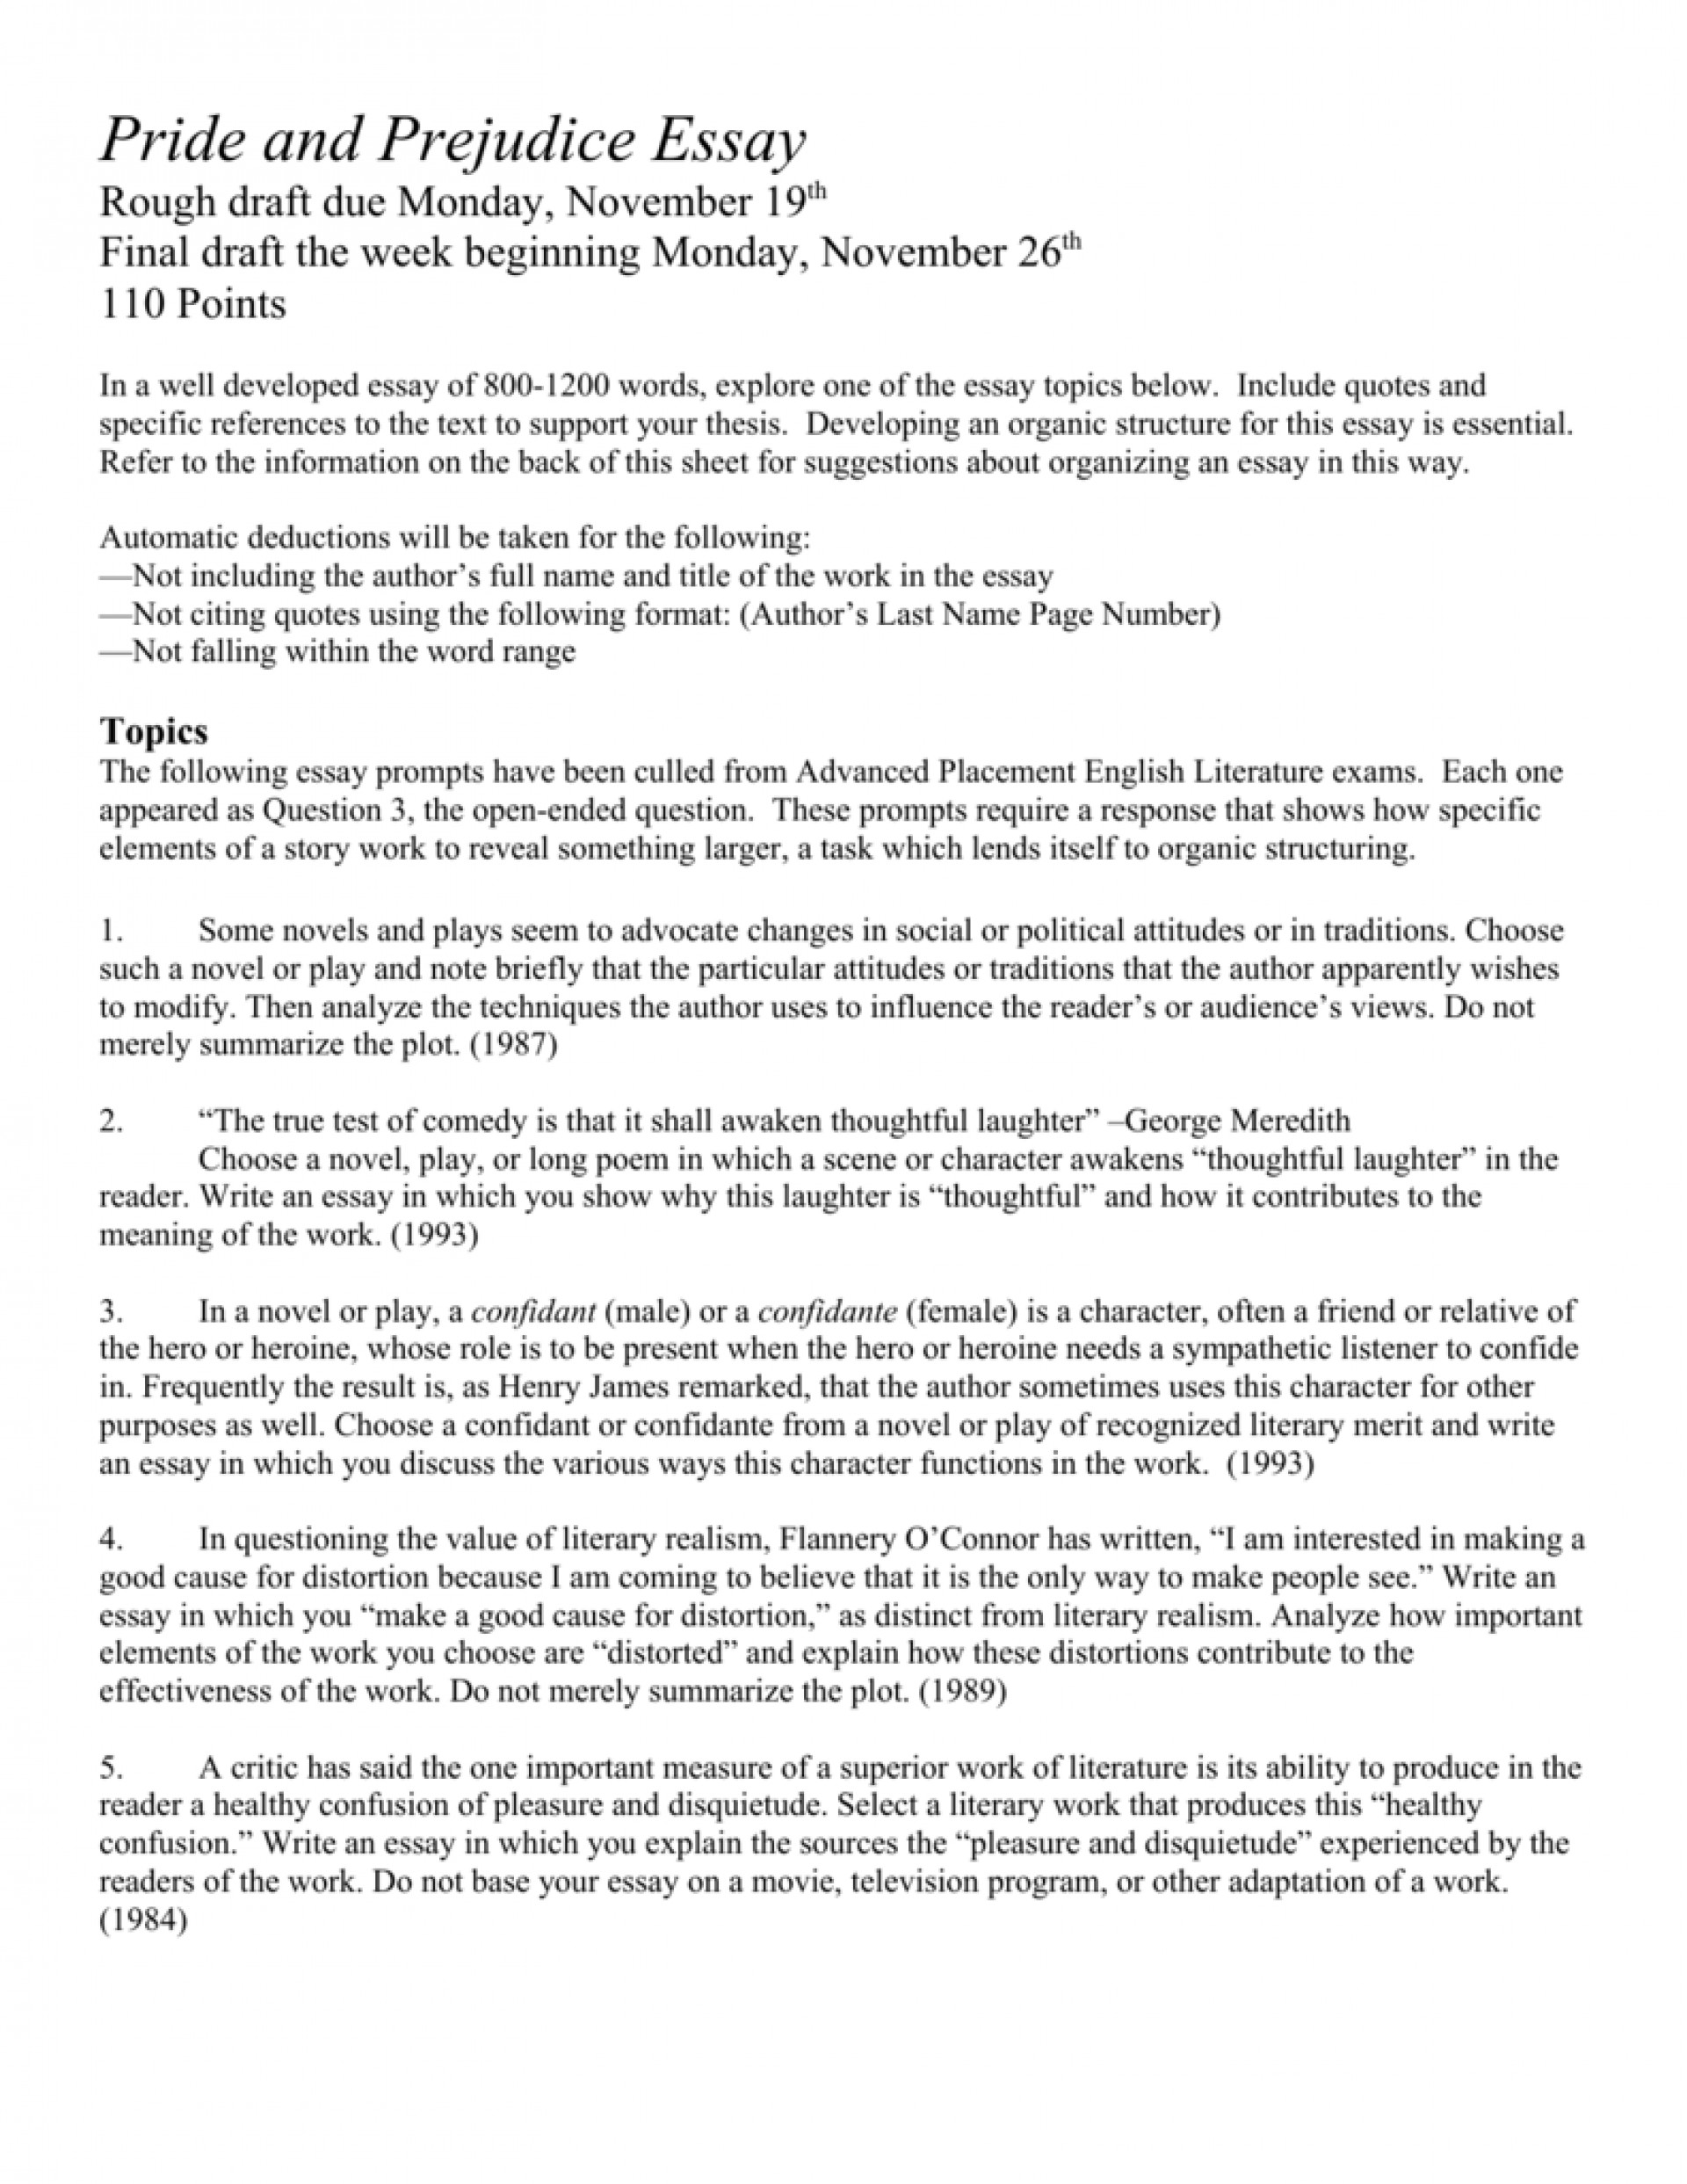 002 008797584 1 Essay Example Stunning Pride Goes Before A Fall Narrative Thesis 1920